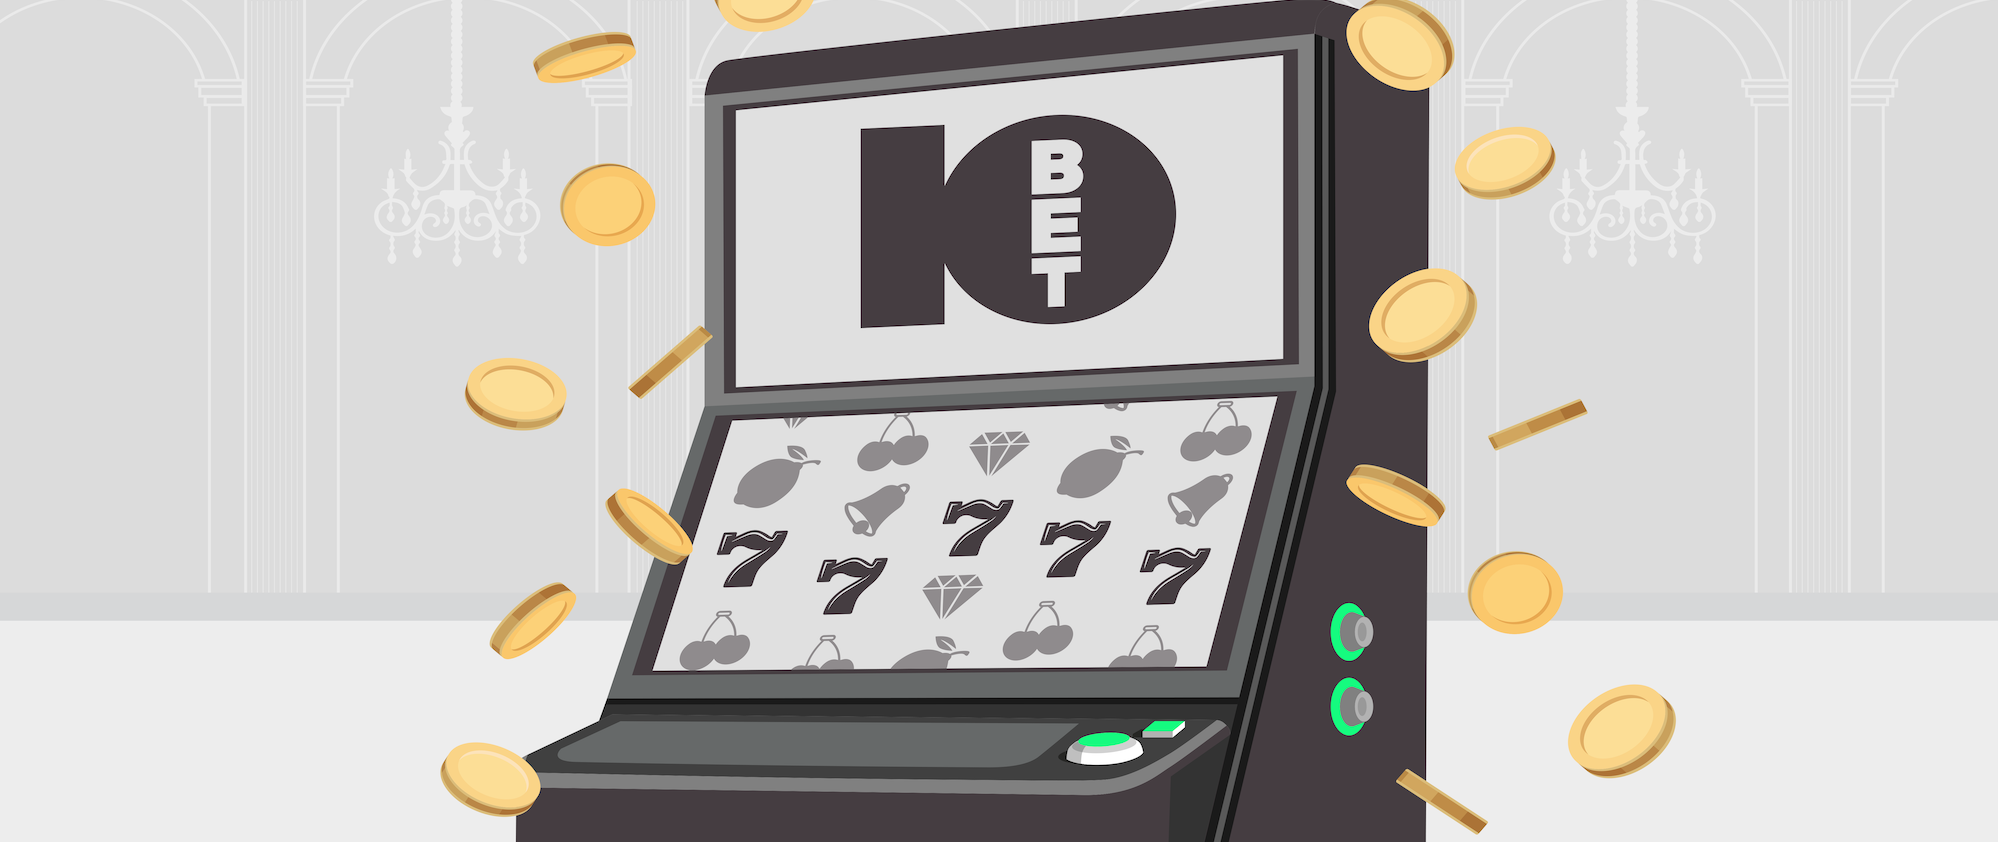 10bet's Ultimate Guide to playing Slots 1